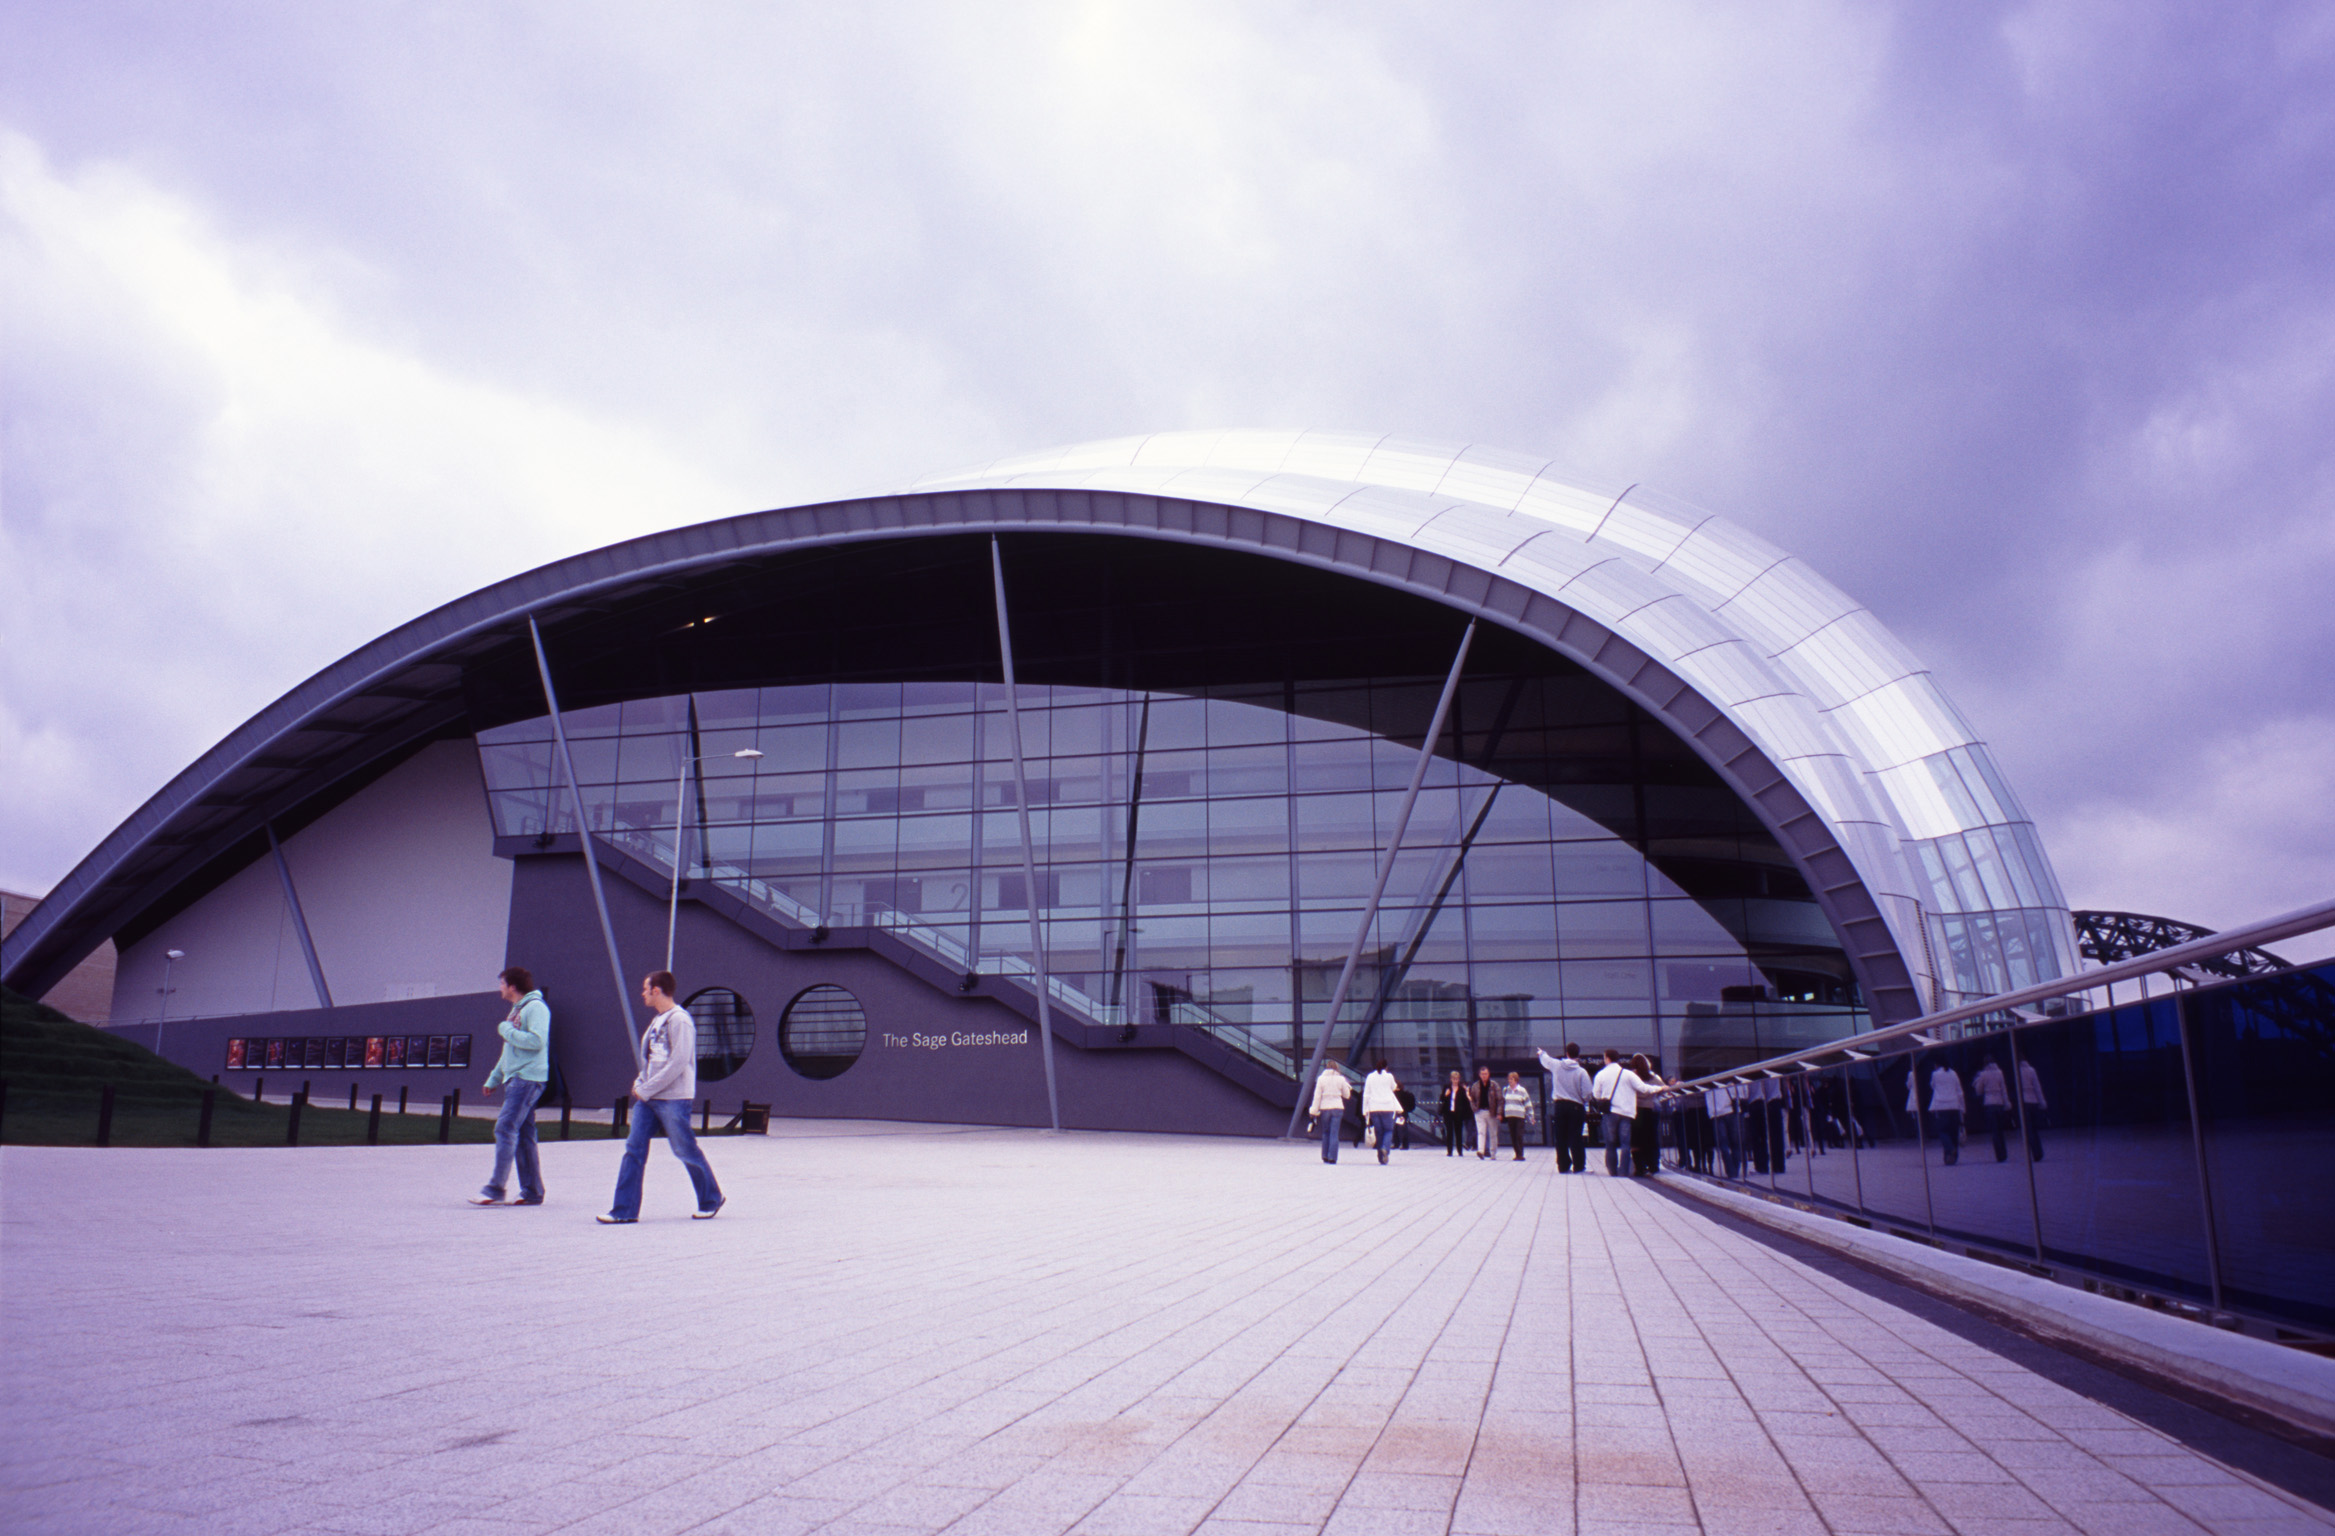 Exterior View of The Sage Building in Gateshead, England. A concert venue and also a centre for musical education.